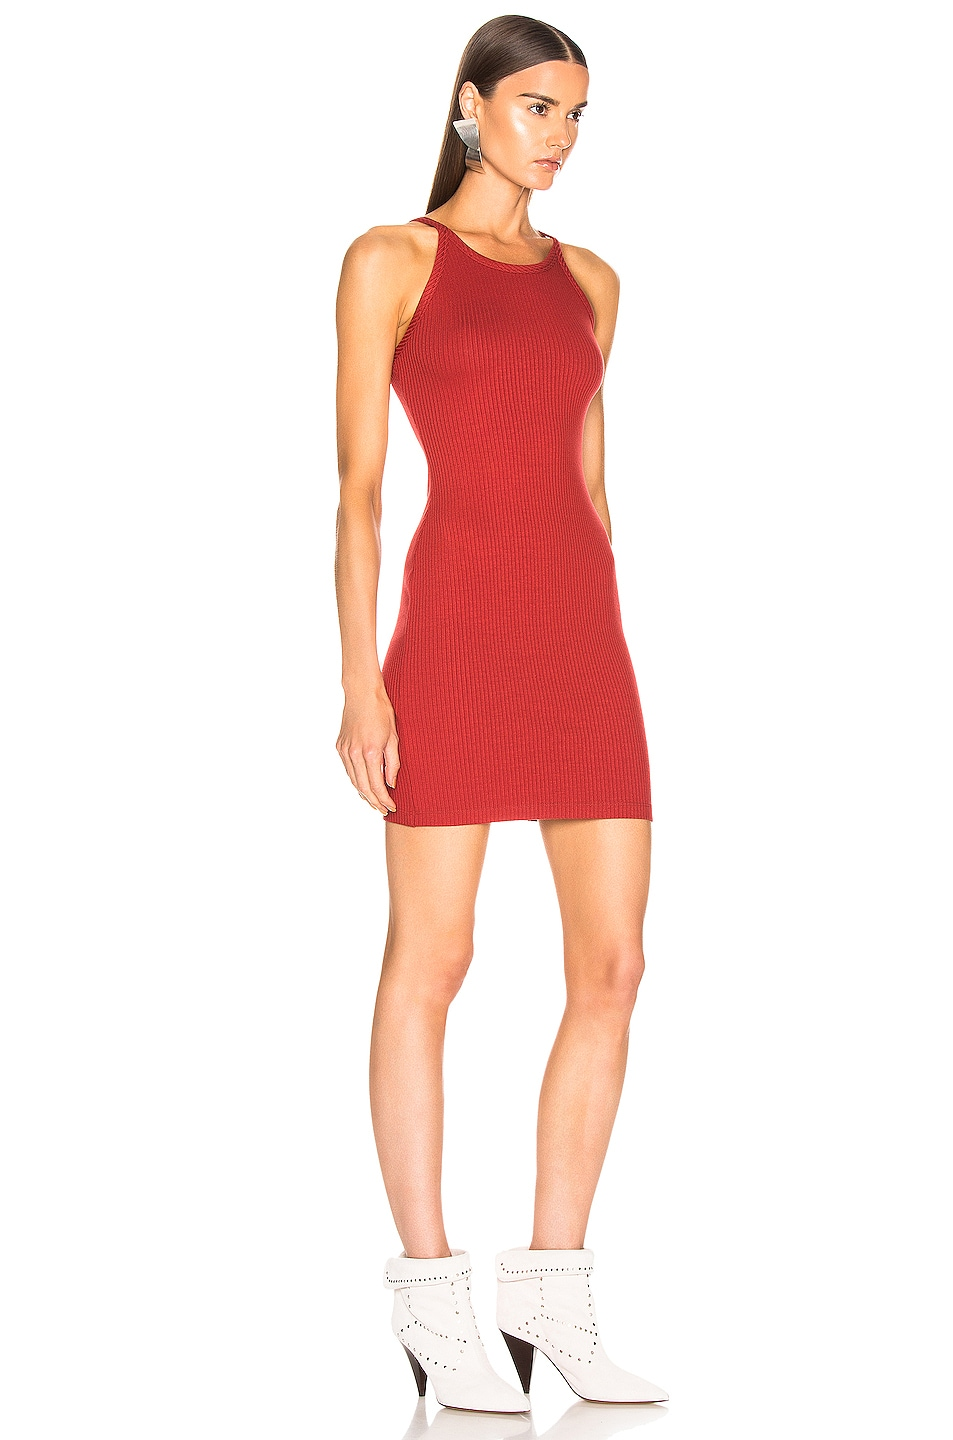 Image 2 of The Range Alloy Rib Banded Mini Dress in Sunburn